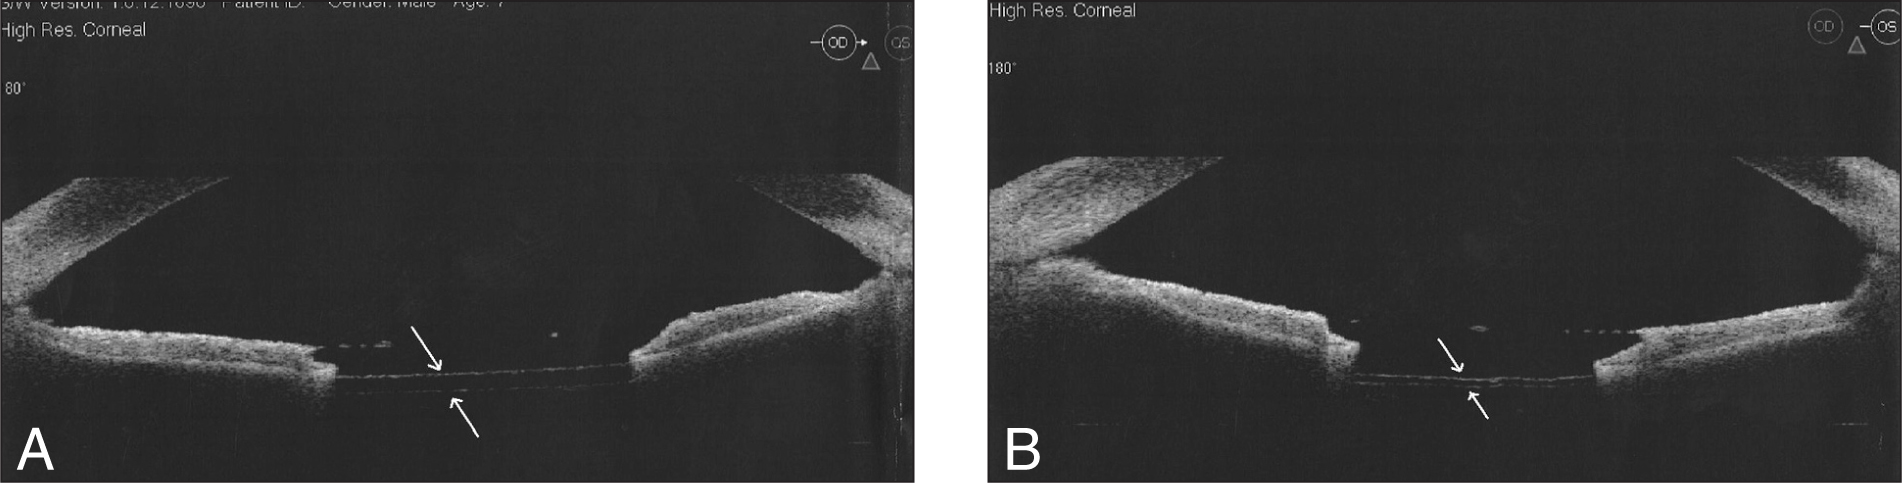 Anterior Segment Optical Coherence Tomography Showing Two Intact Membranes (arrows) in Place of the Lens in an Otherwise Normal Anterior Chamber. (A) Right Eye. (B) Left Eye.